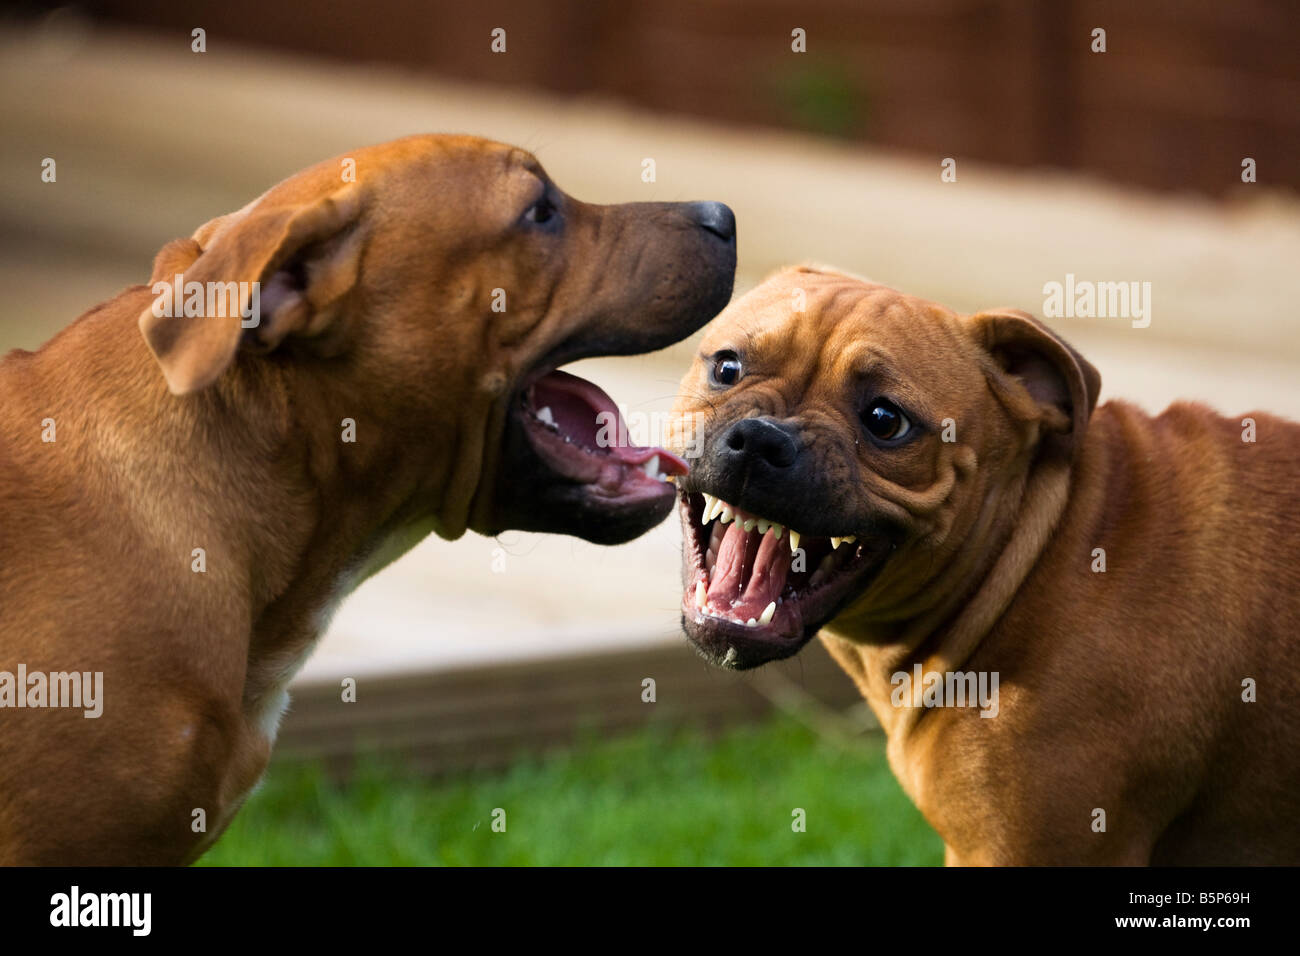 Brother and Sister Staffy puppies play fighting Stock Photo